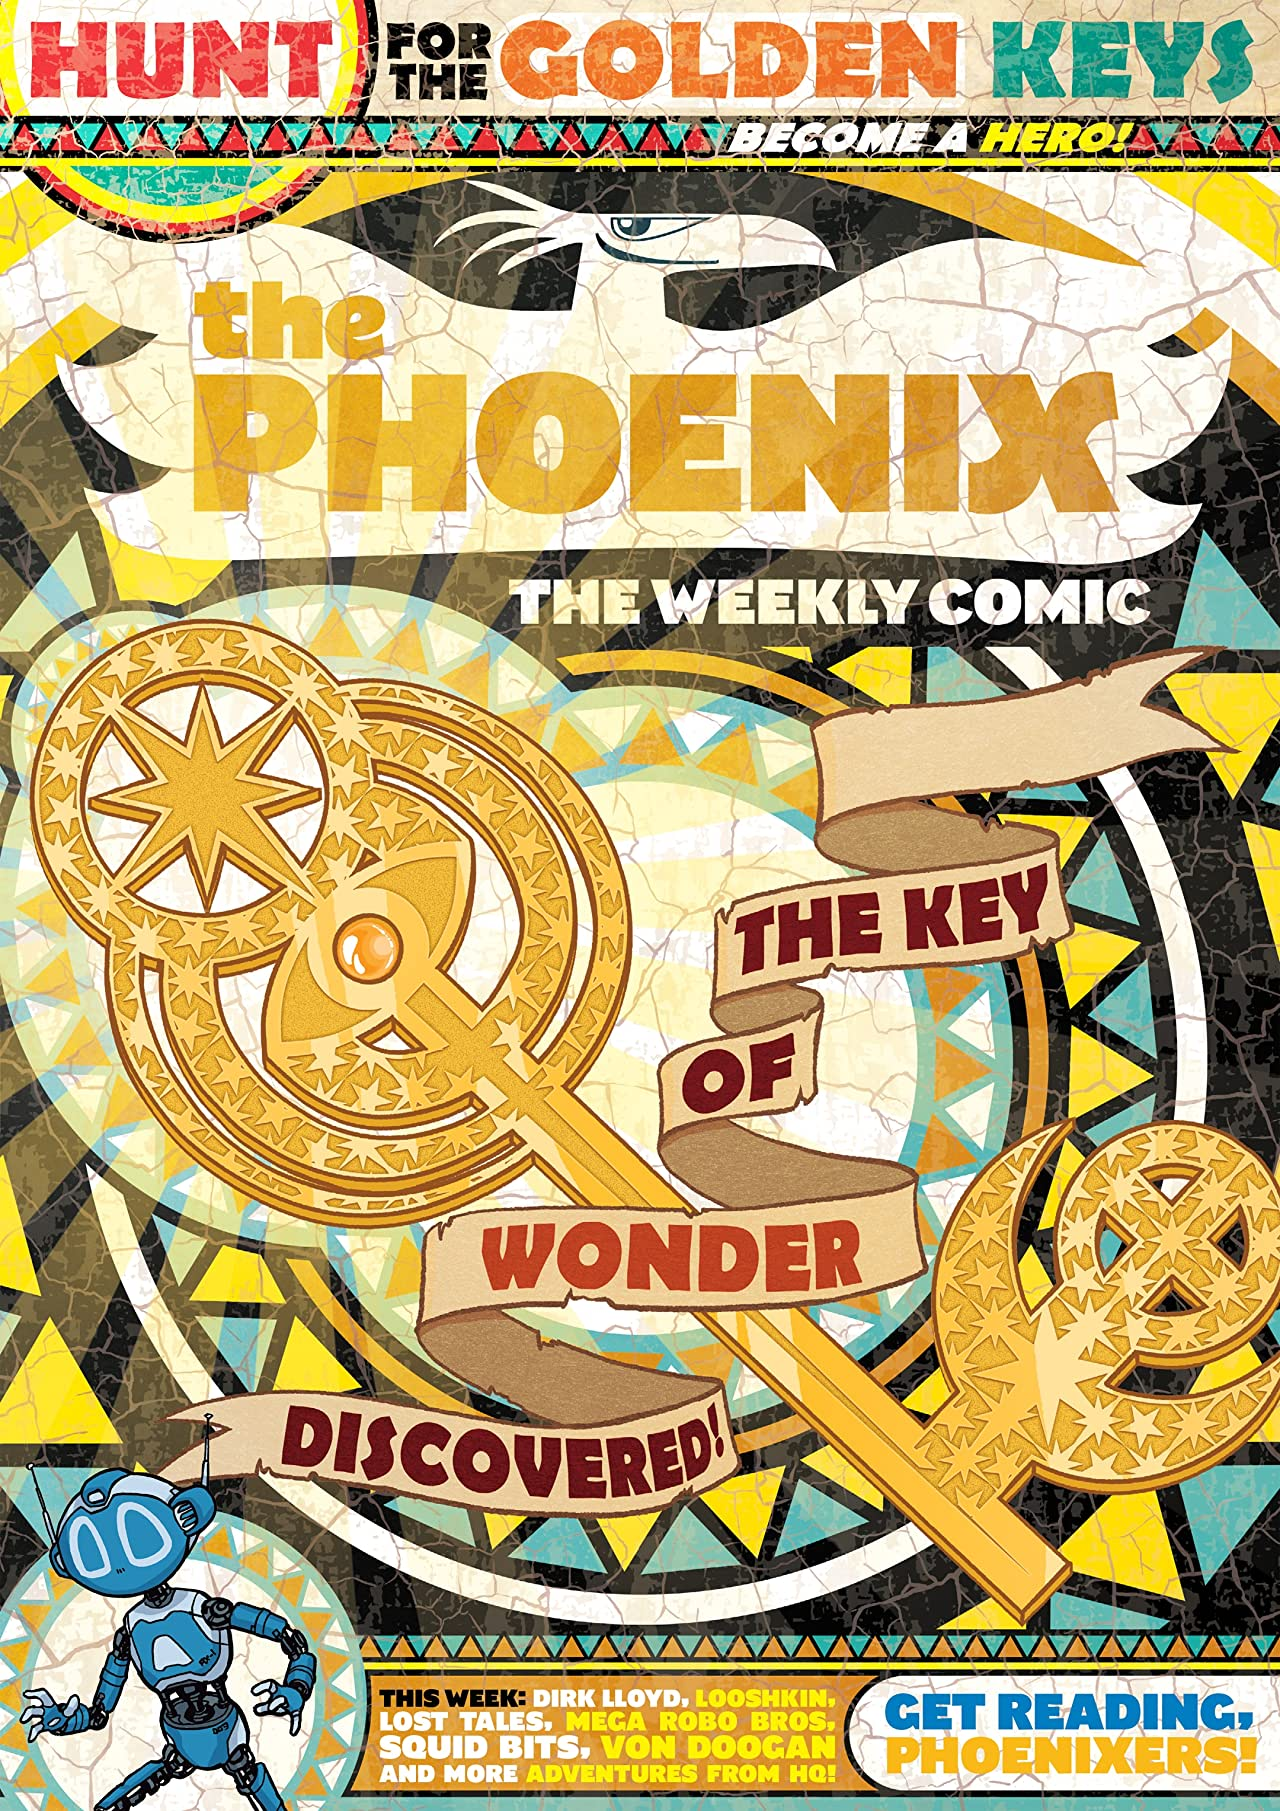 The Phoenix #195: The Weekly Story Comic